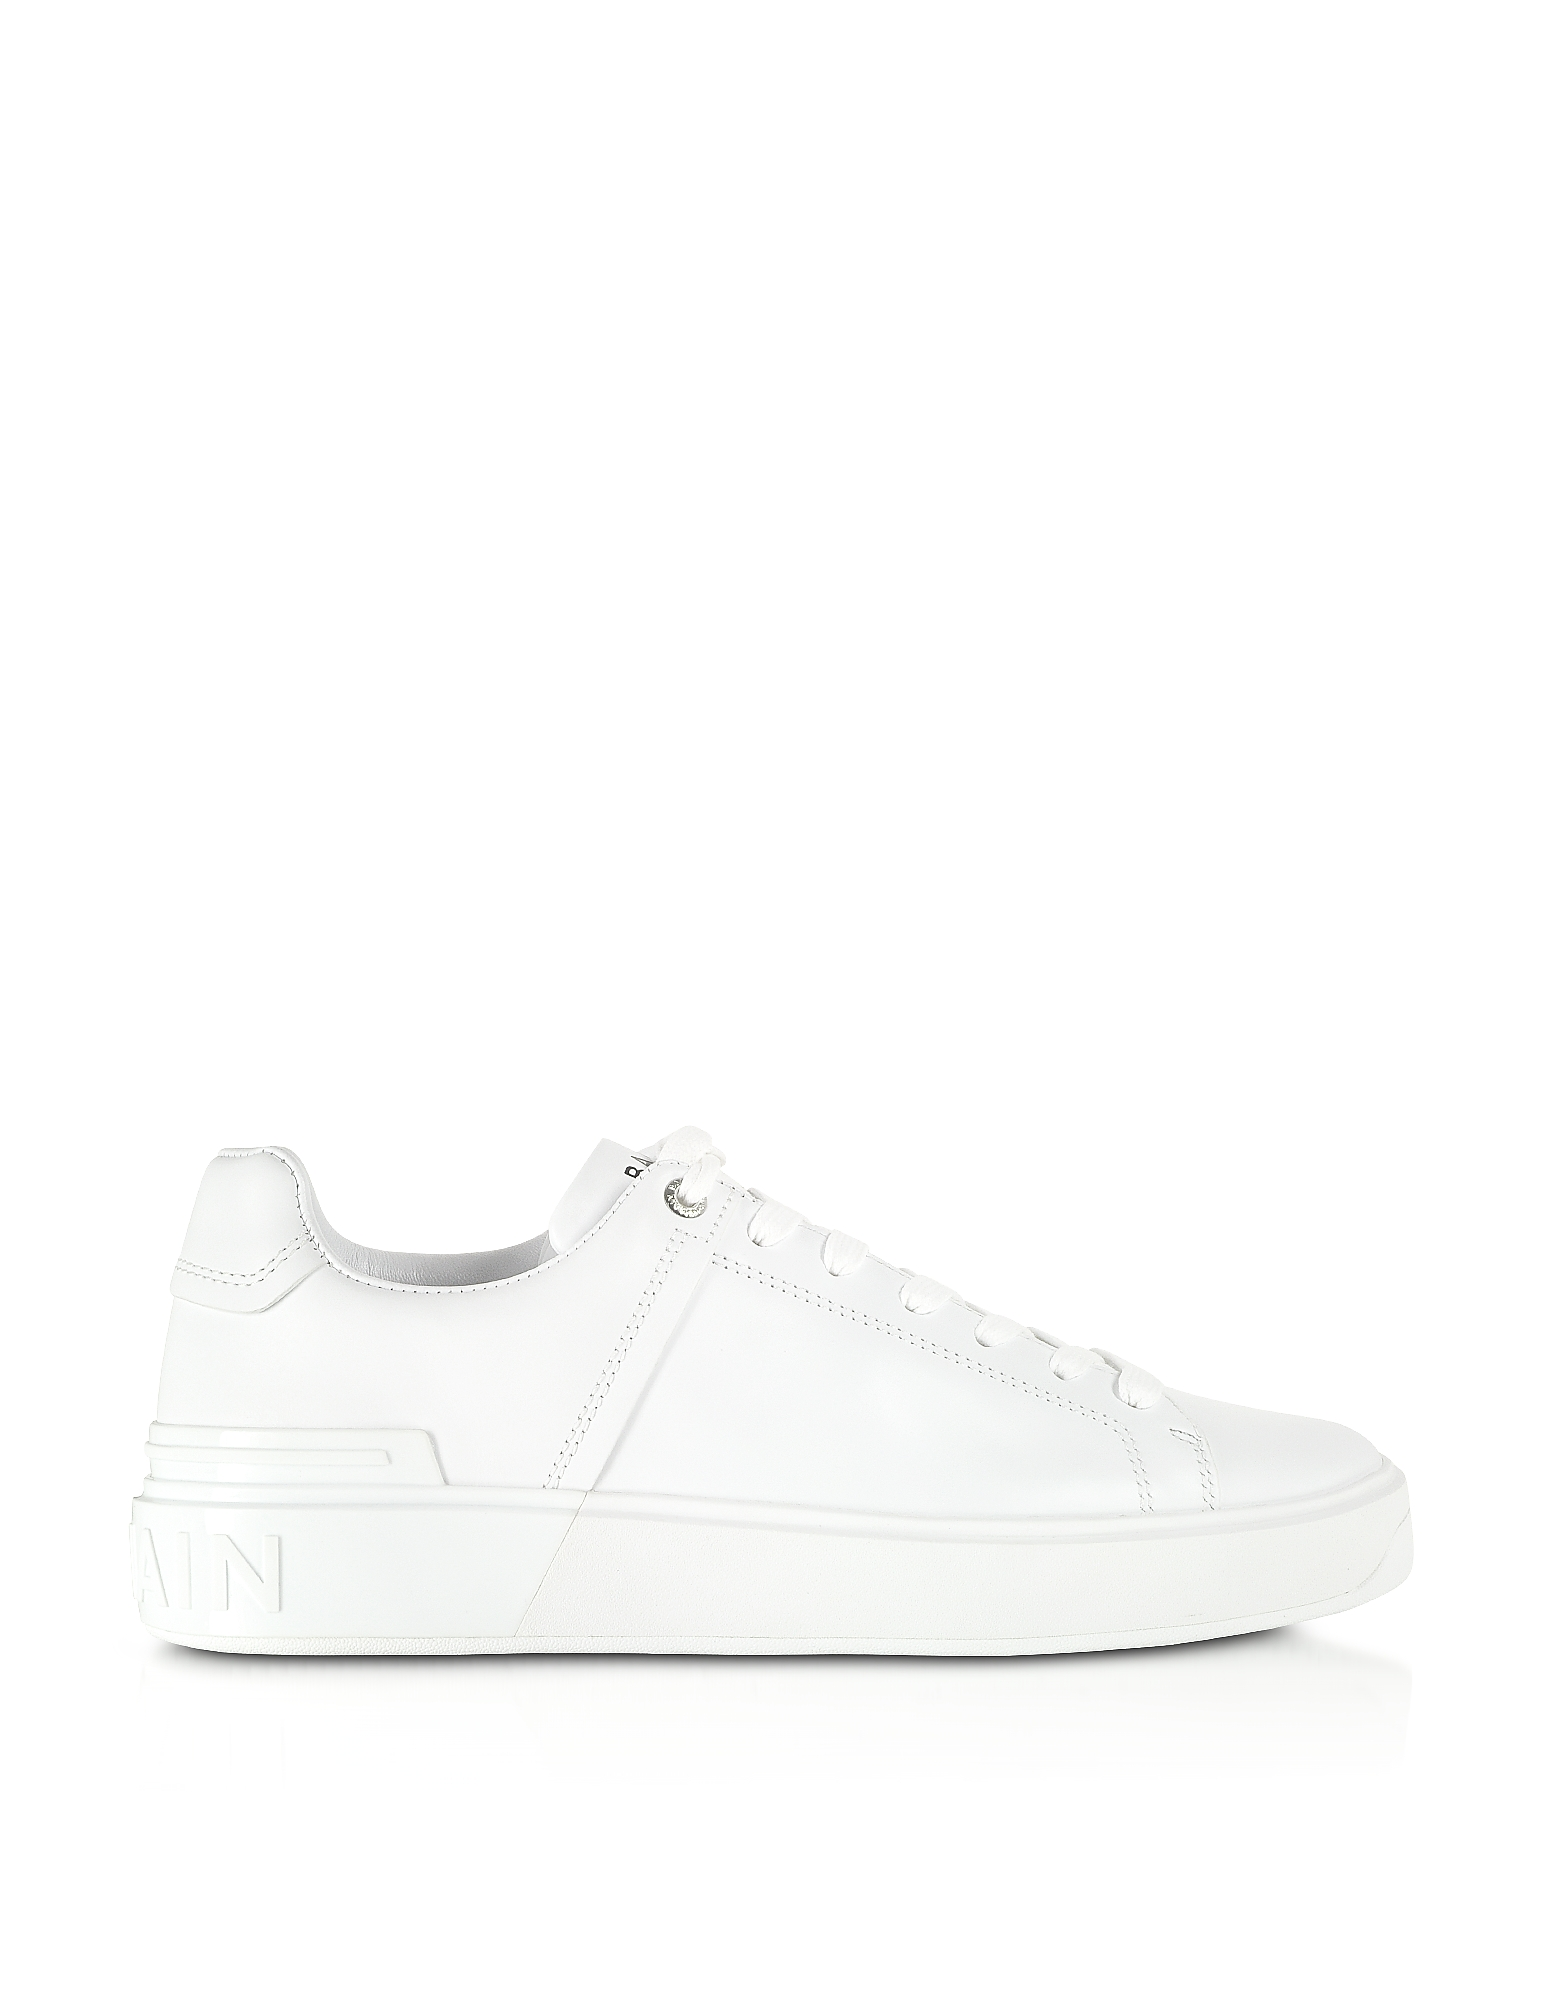 Balmain Designer Shoes, White Low Top Men's B-Court Sneakers